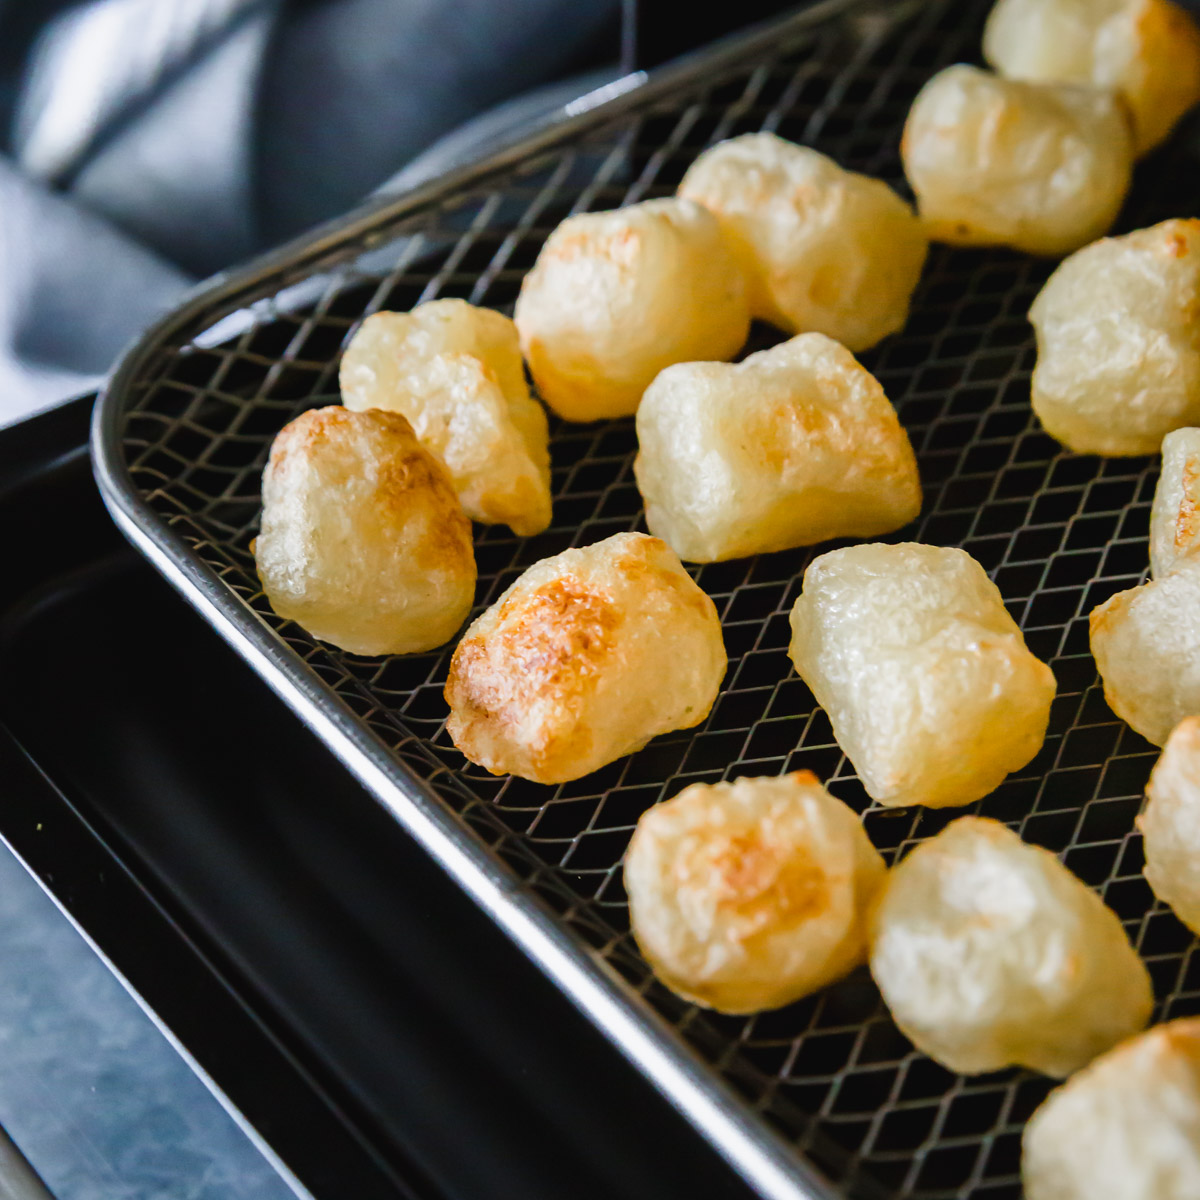 After 16-18 minutes in the air fryer cauliflower gnocchi is golden brown around the edges and perfectly crispy in texture to enjoy however you like.